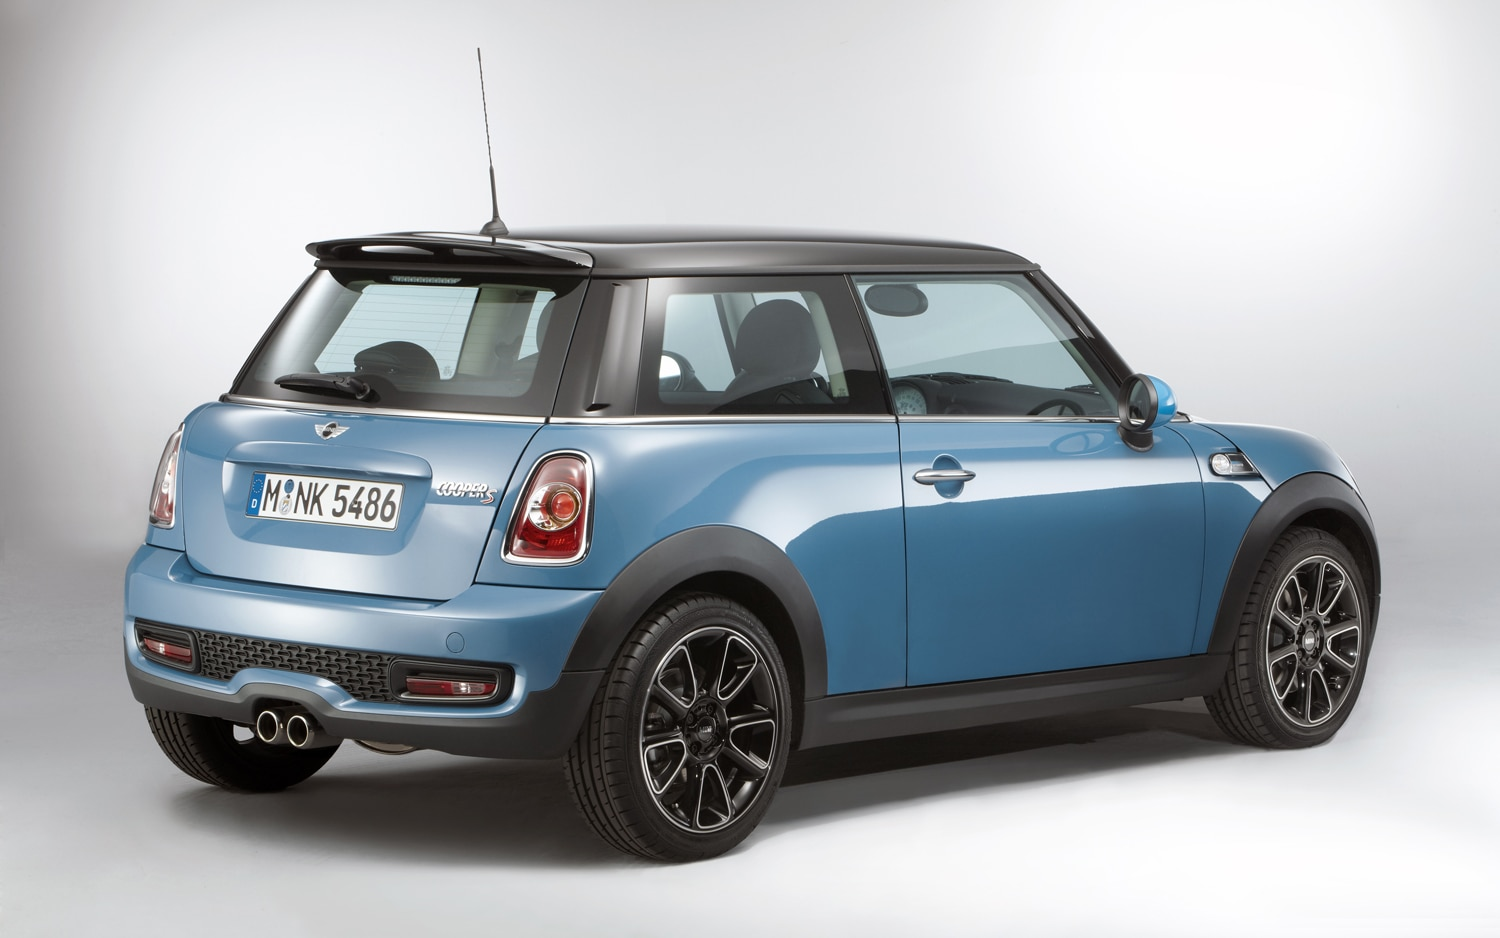 First Drive: 2012 Mini Cooper S Coupe